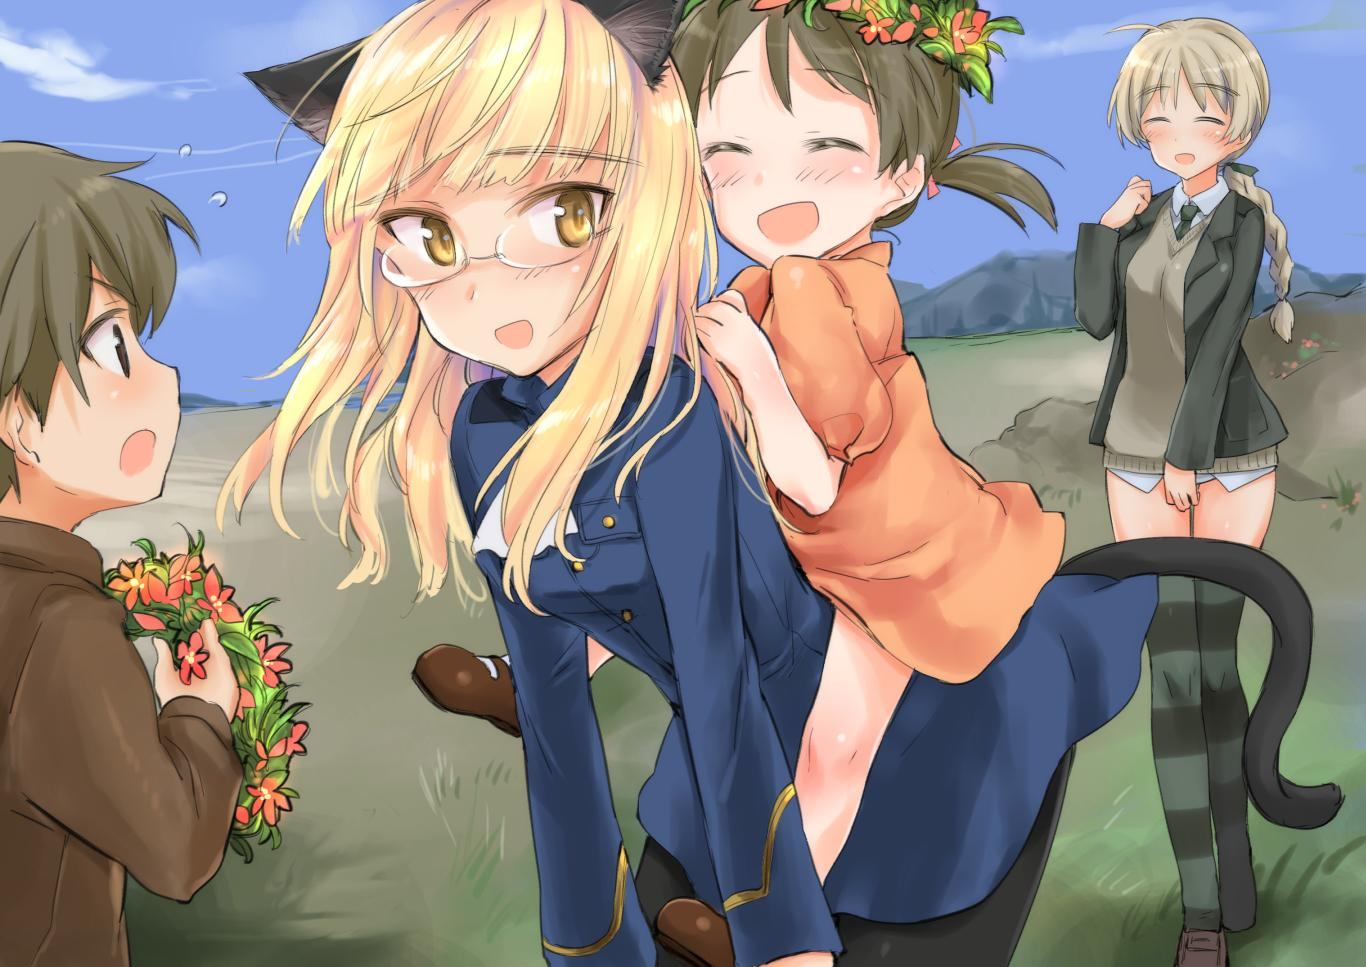 1boy 3girls animal_ears aohashi_ame black_jacket black_legwear black_neckwear black_ribbon blonde_hair blue_jacket blue_sky braid brown_eyes brown_hair brown_sweater carrying cat_ears cat_tail child clouds cloudy_sky day dress dress_shirt eyebrows_visible_through_hair glasses grass grey_legwear hair_ribbon holding_wreath jacket leaning_forward light_blush light_brown_hair long_sleeves looking_at_another looking_at_viewer lynette_bishop military military_uniform multiple_girls necktie no_pants open_clothes open_jacket open_mouth orange_dress outdoors pantyhose perrine_h_clostermann piggyback ribbon shirt short_sleeves short_twintails single_braid sky smile standing strike_witches striped striped_legwear sweater tail thigh-highs twintails uniform v-neck white_shirt world_witches_series wreath